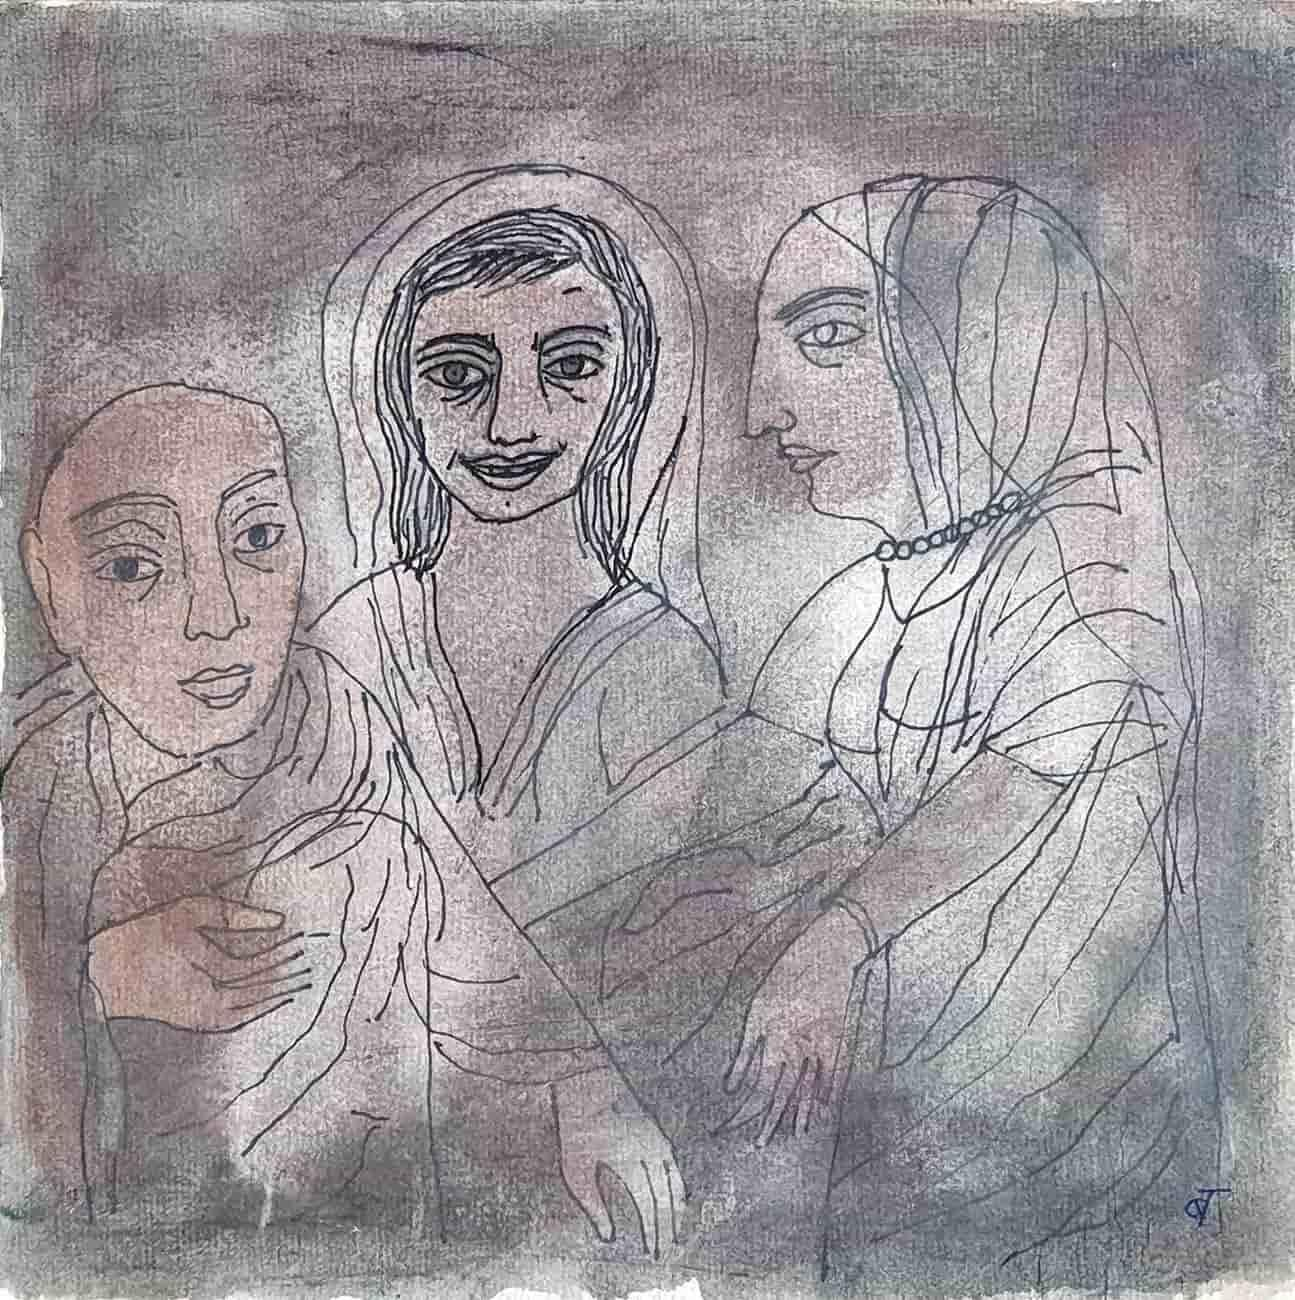 """Figurative, Ink, Watercolor, Mixed Media on paper by Badri Narayan """"In Stock"""""""